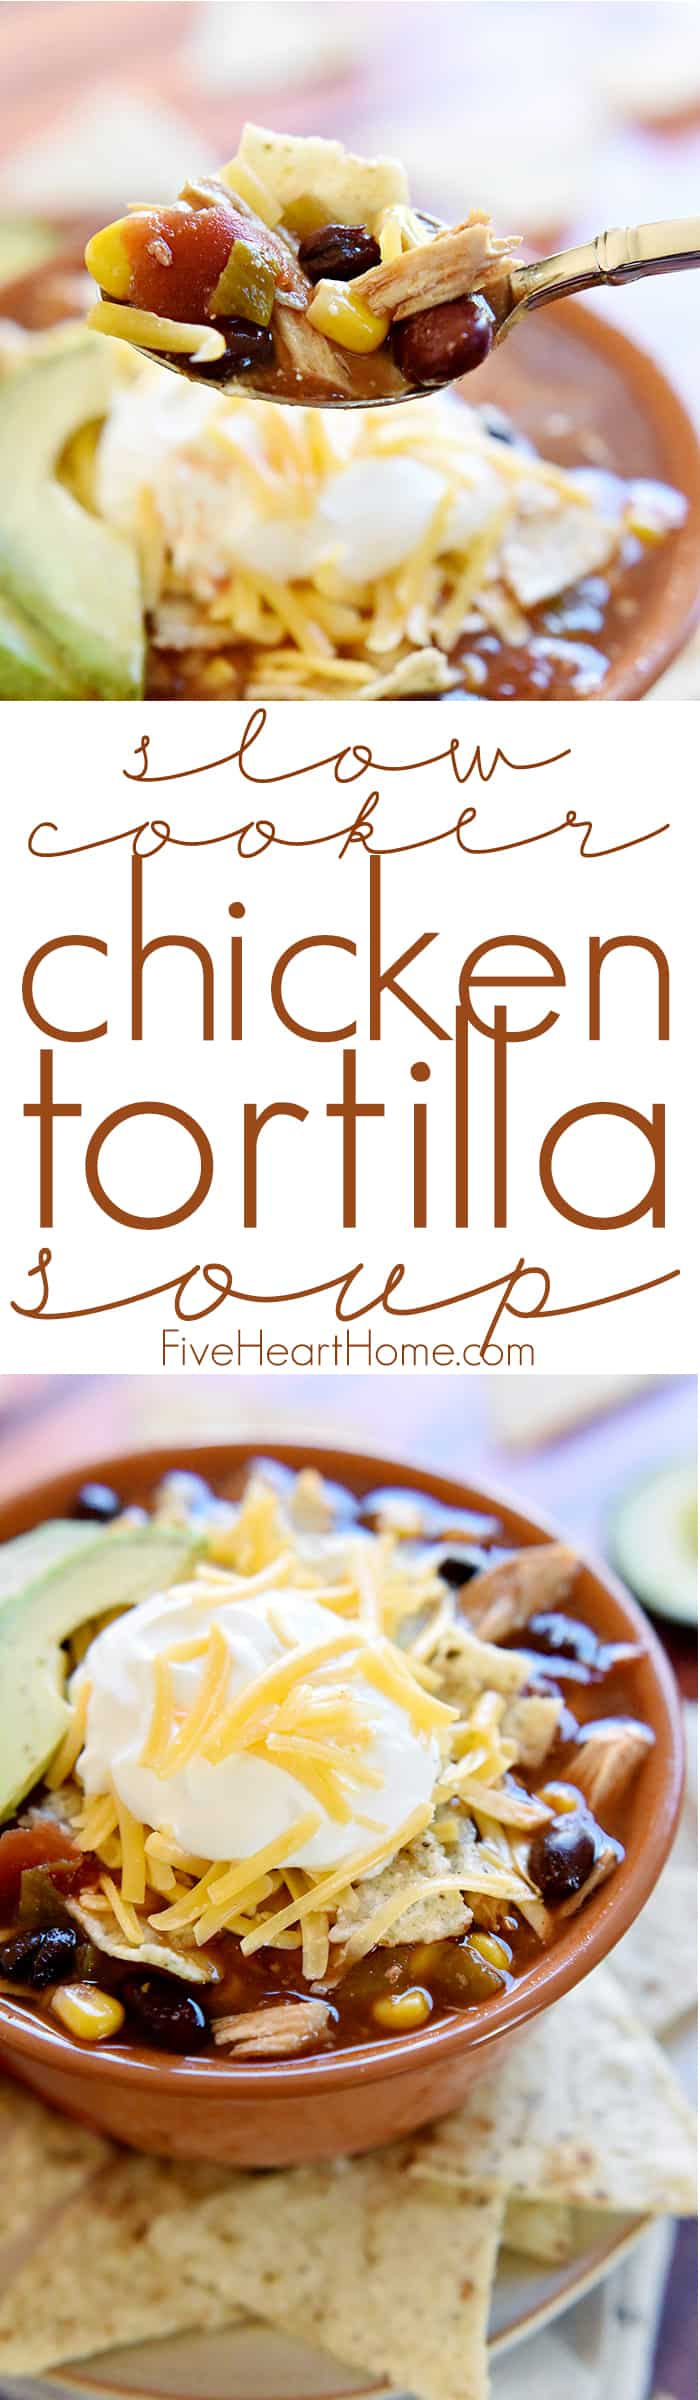 Slow Cooker Chicken Tortilla Soup Collage with Text Overlay